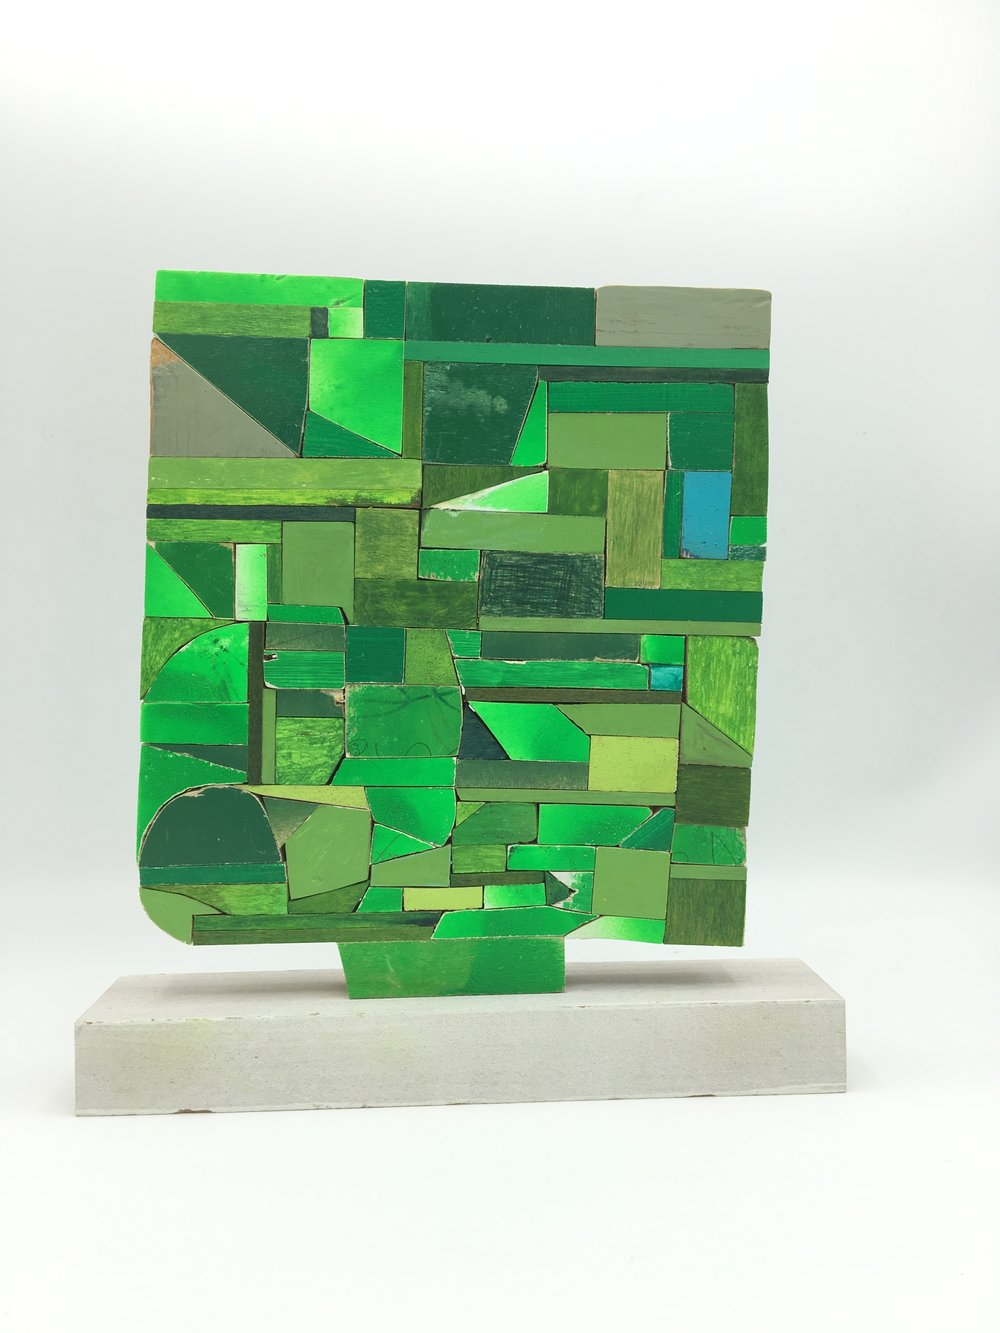 Green One, 2016 [private collection Boston, MA] Wood, Paint, Colored Pencil, Glue 10 x 9 x 2 in.